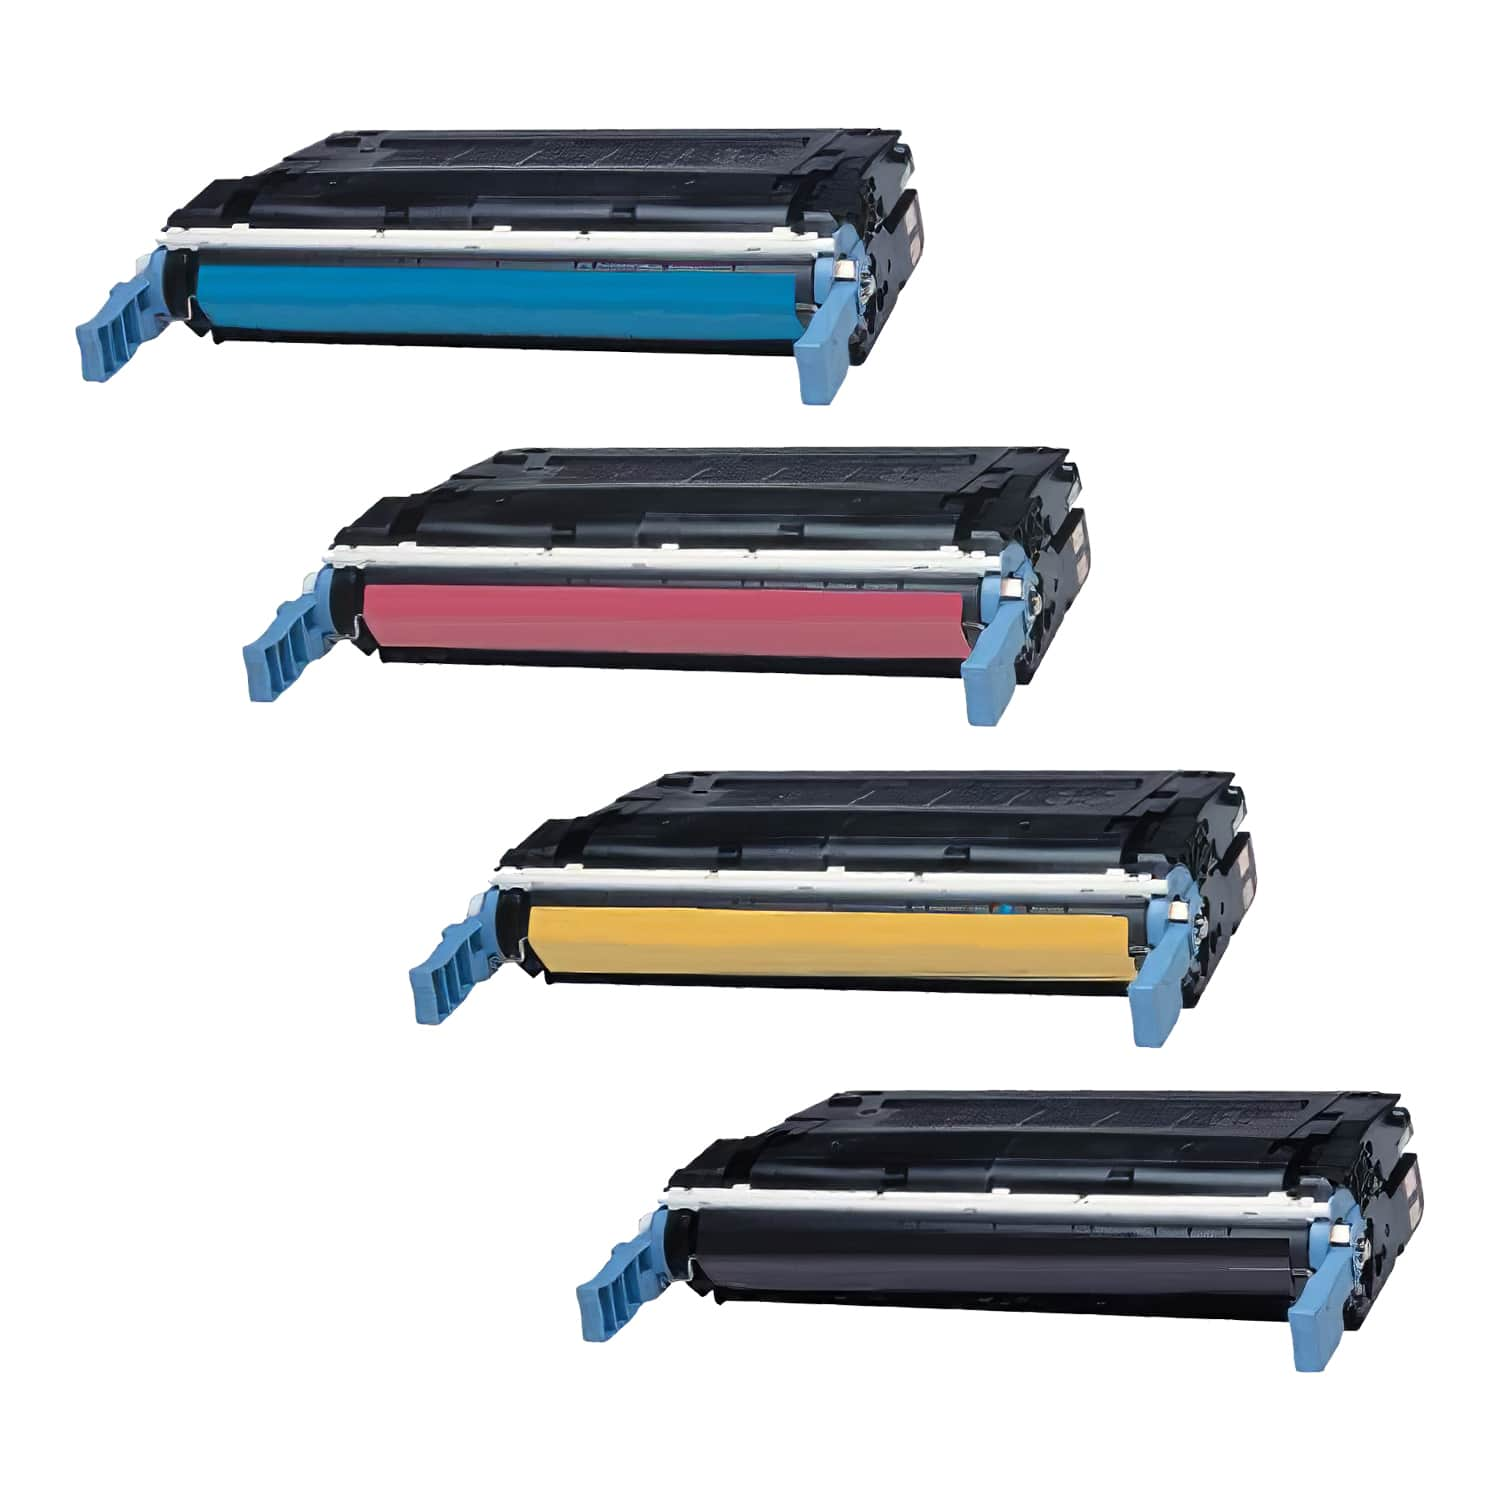 Remanufactured HP Toner Cartridge Bundlpack 643A CMYK Pack - 4 Cartridges